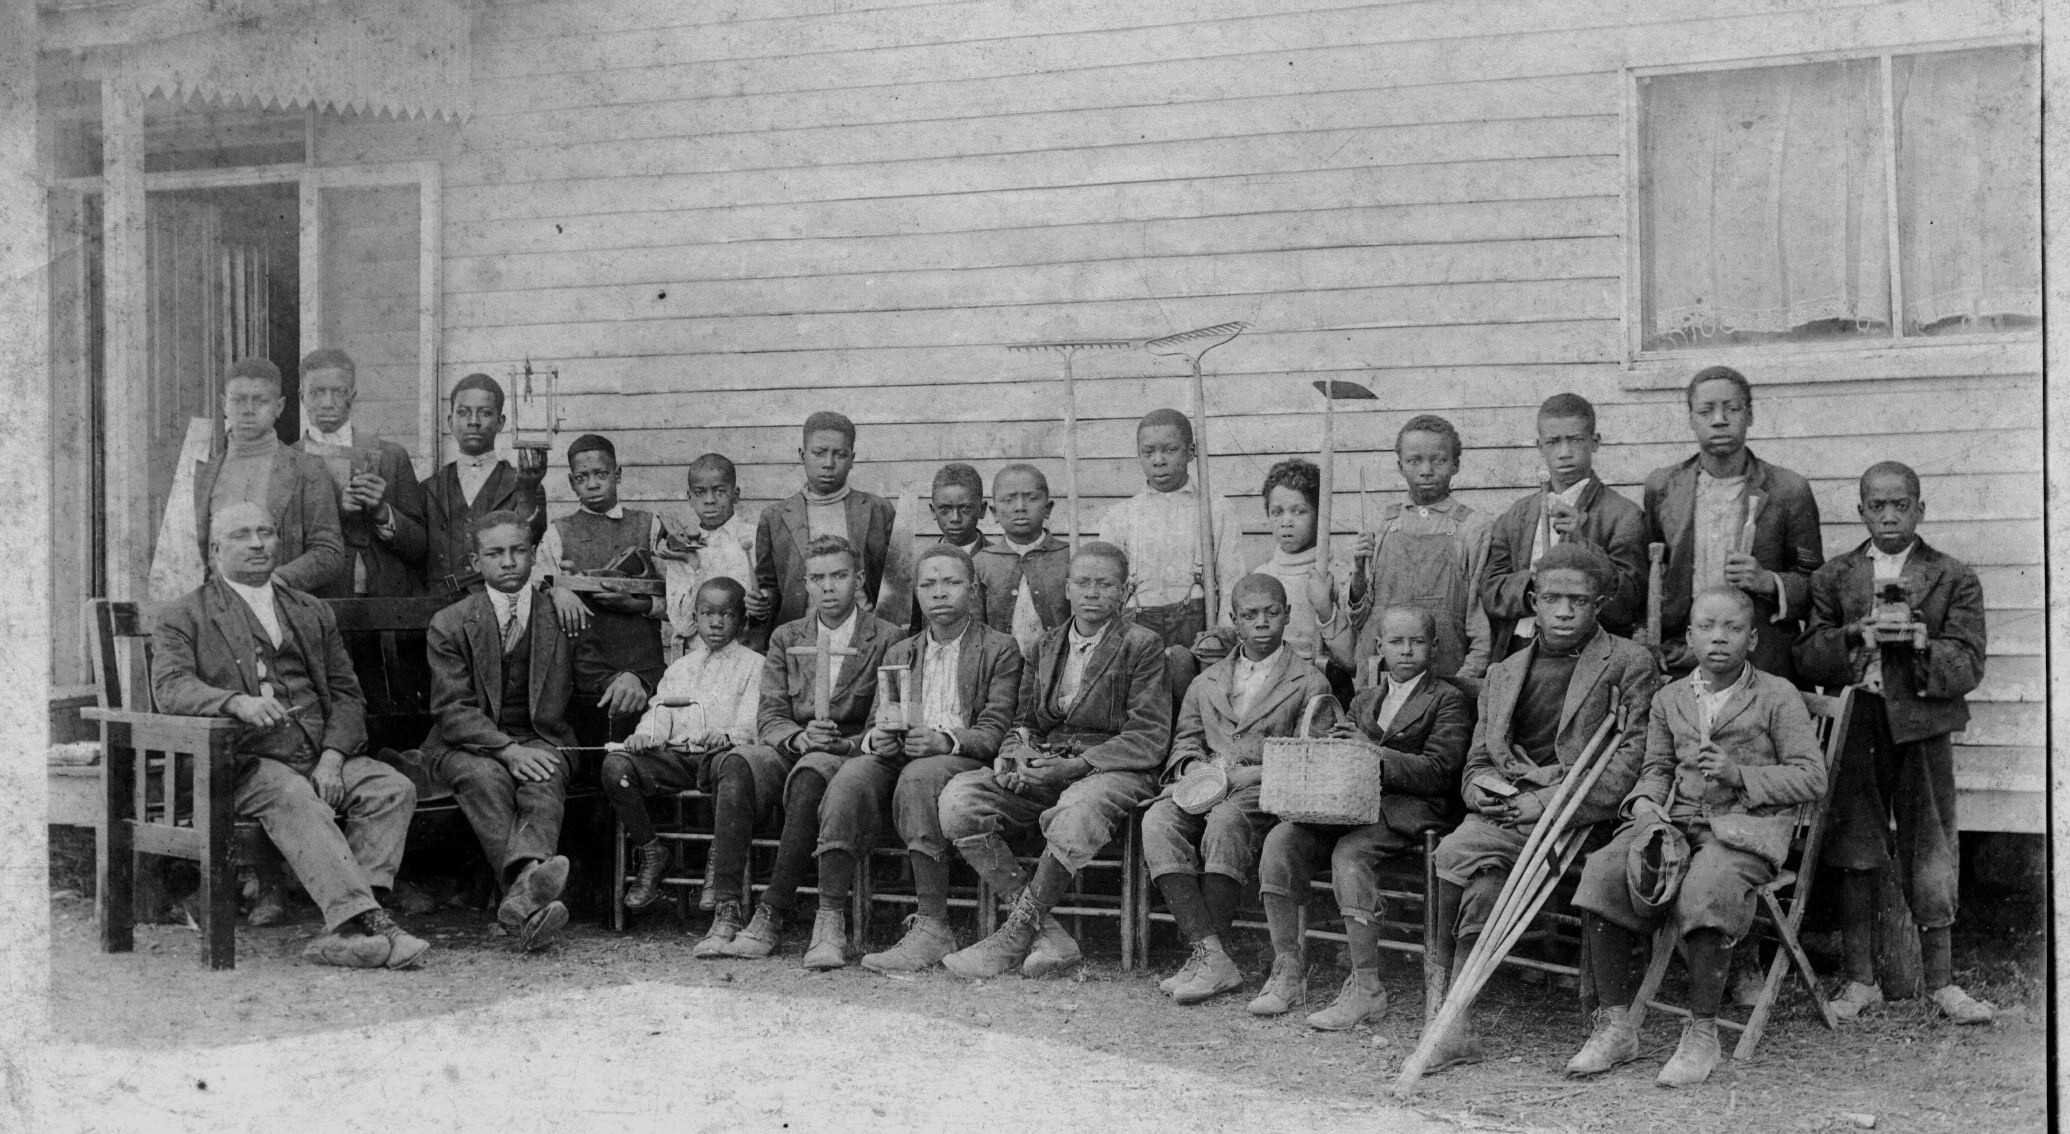 James K. Hughes with a class of boys at the Franklin Training School